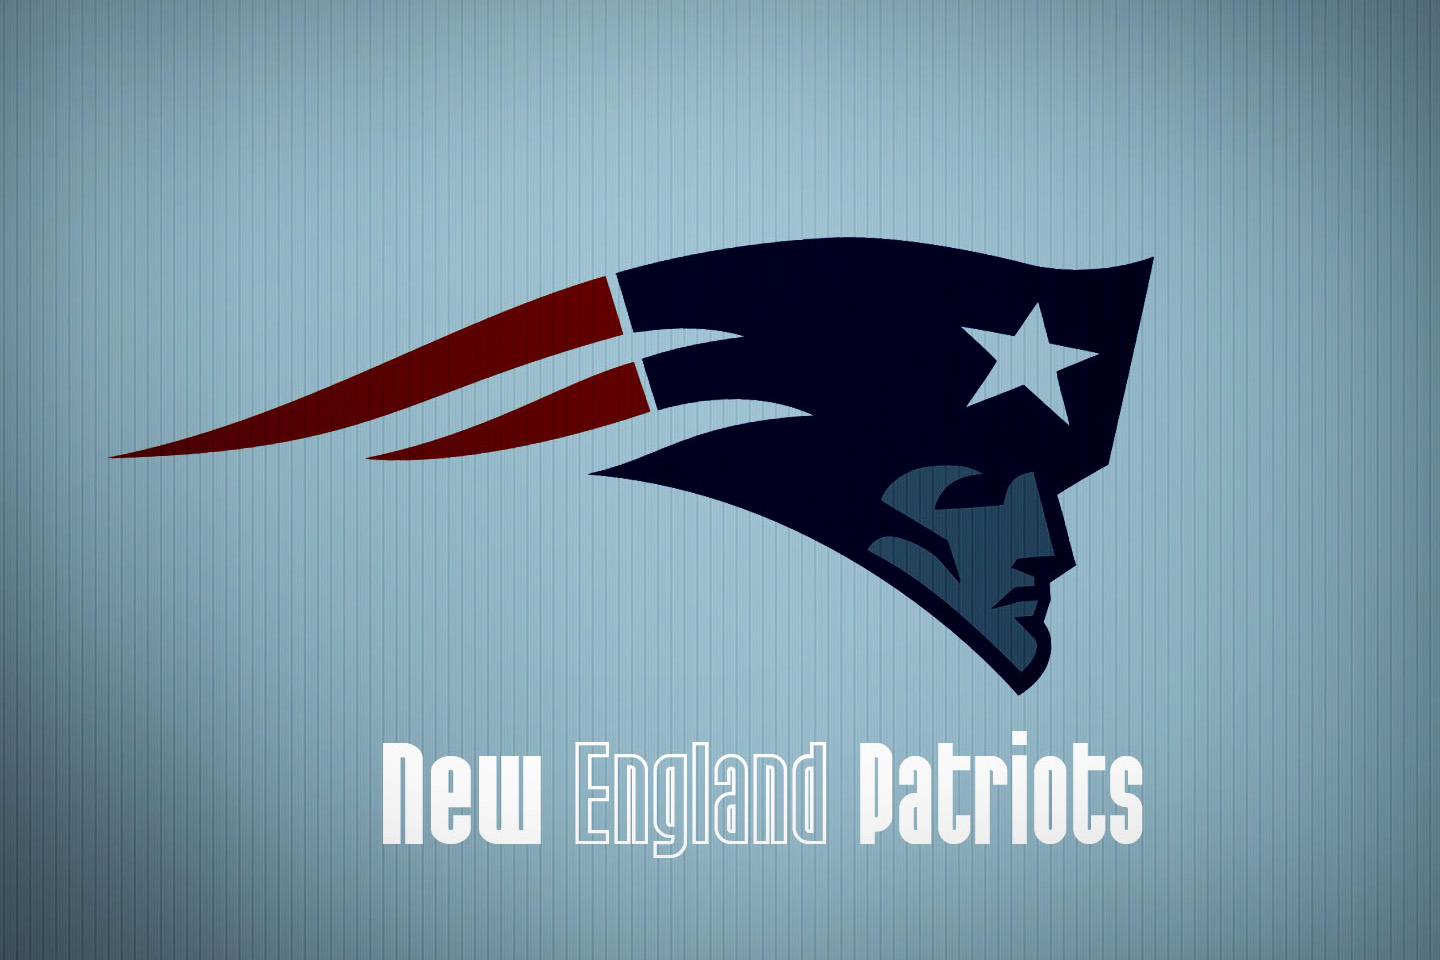 Sport Wallpaper New England Patriots: Patriots Wallpaper And Background Image